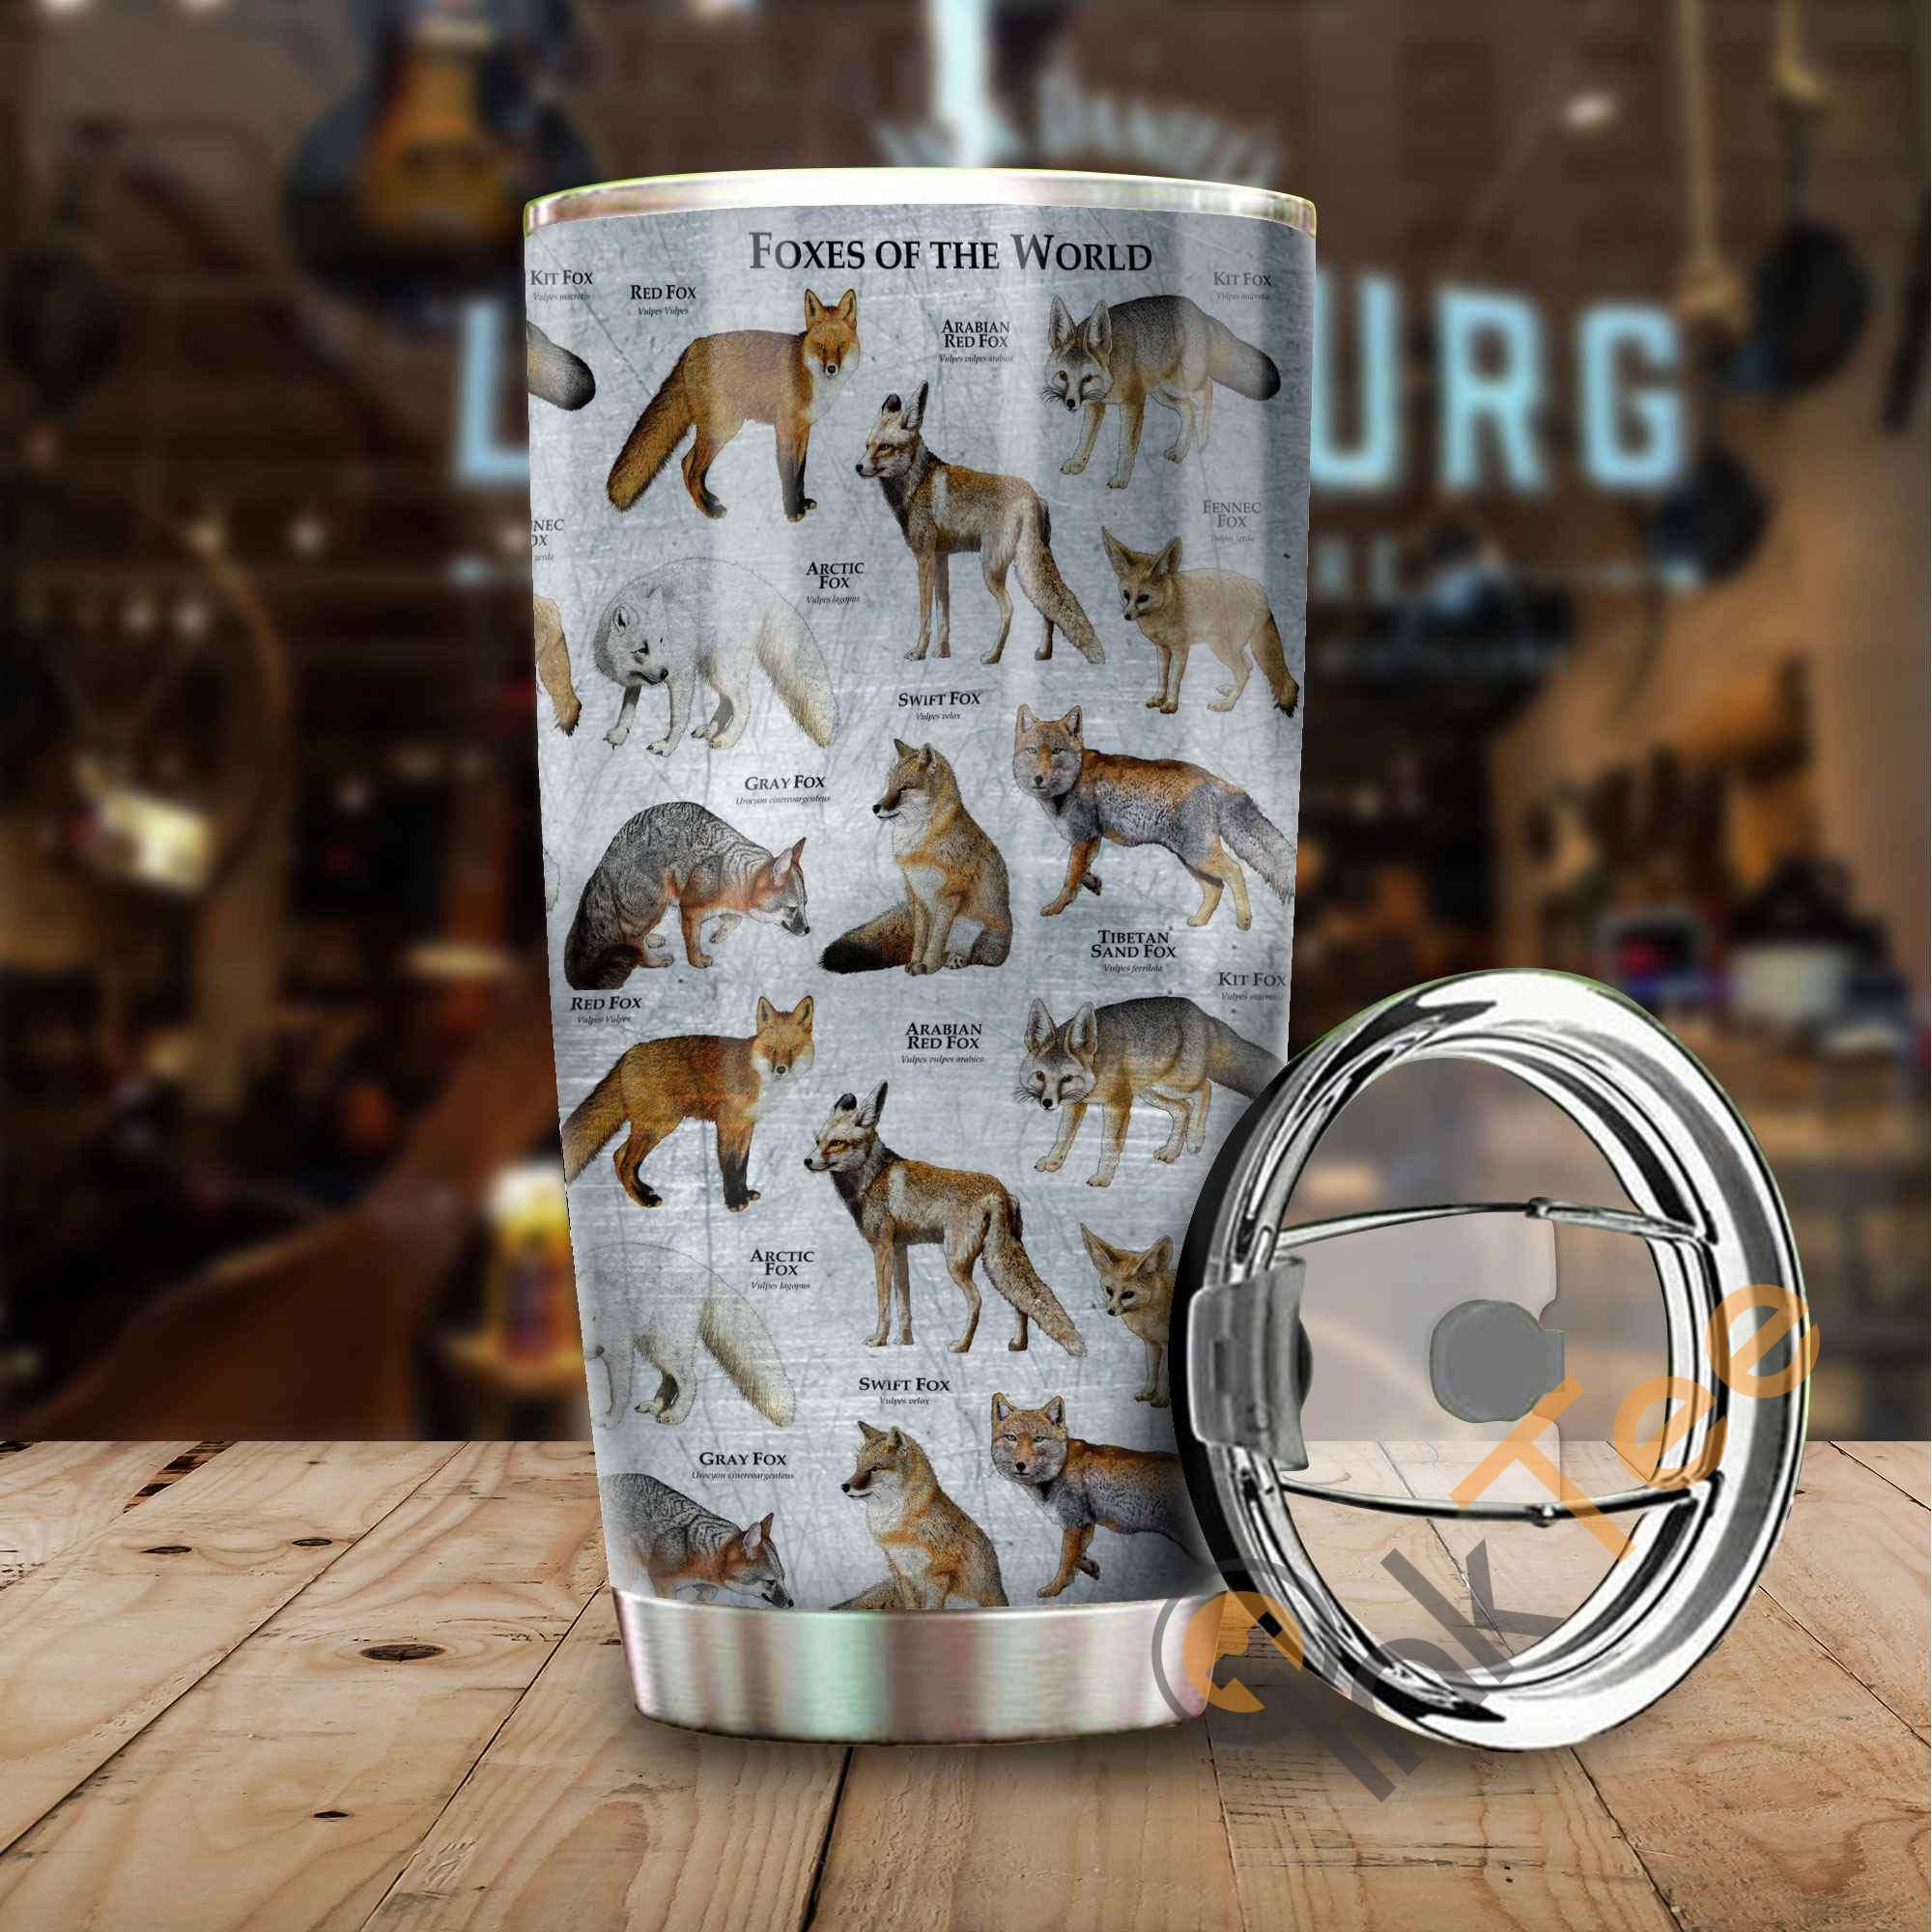 Foxes Of The World Amazon Best Seller Sku 3356 Stainless Steel Tumbler